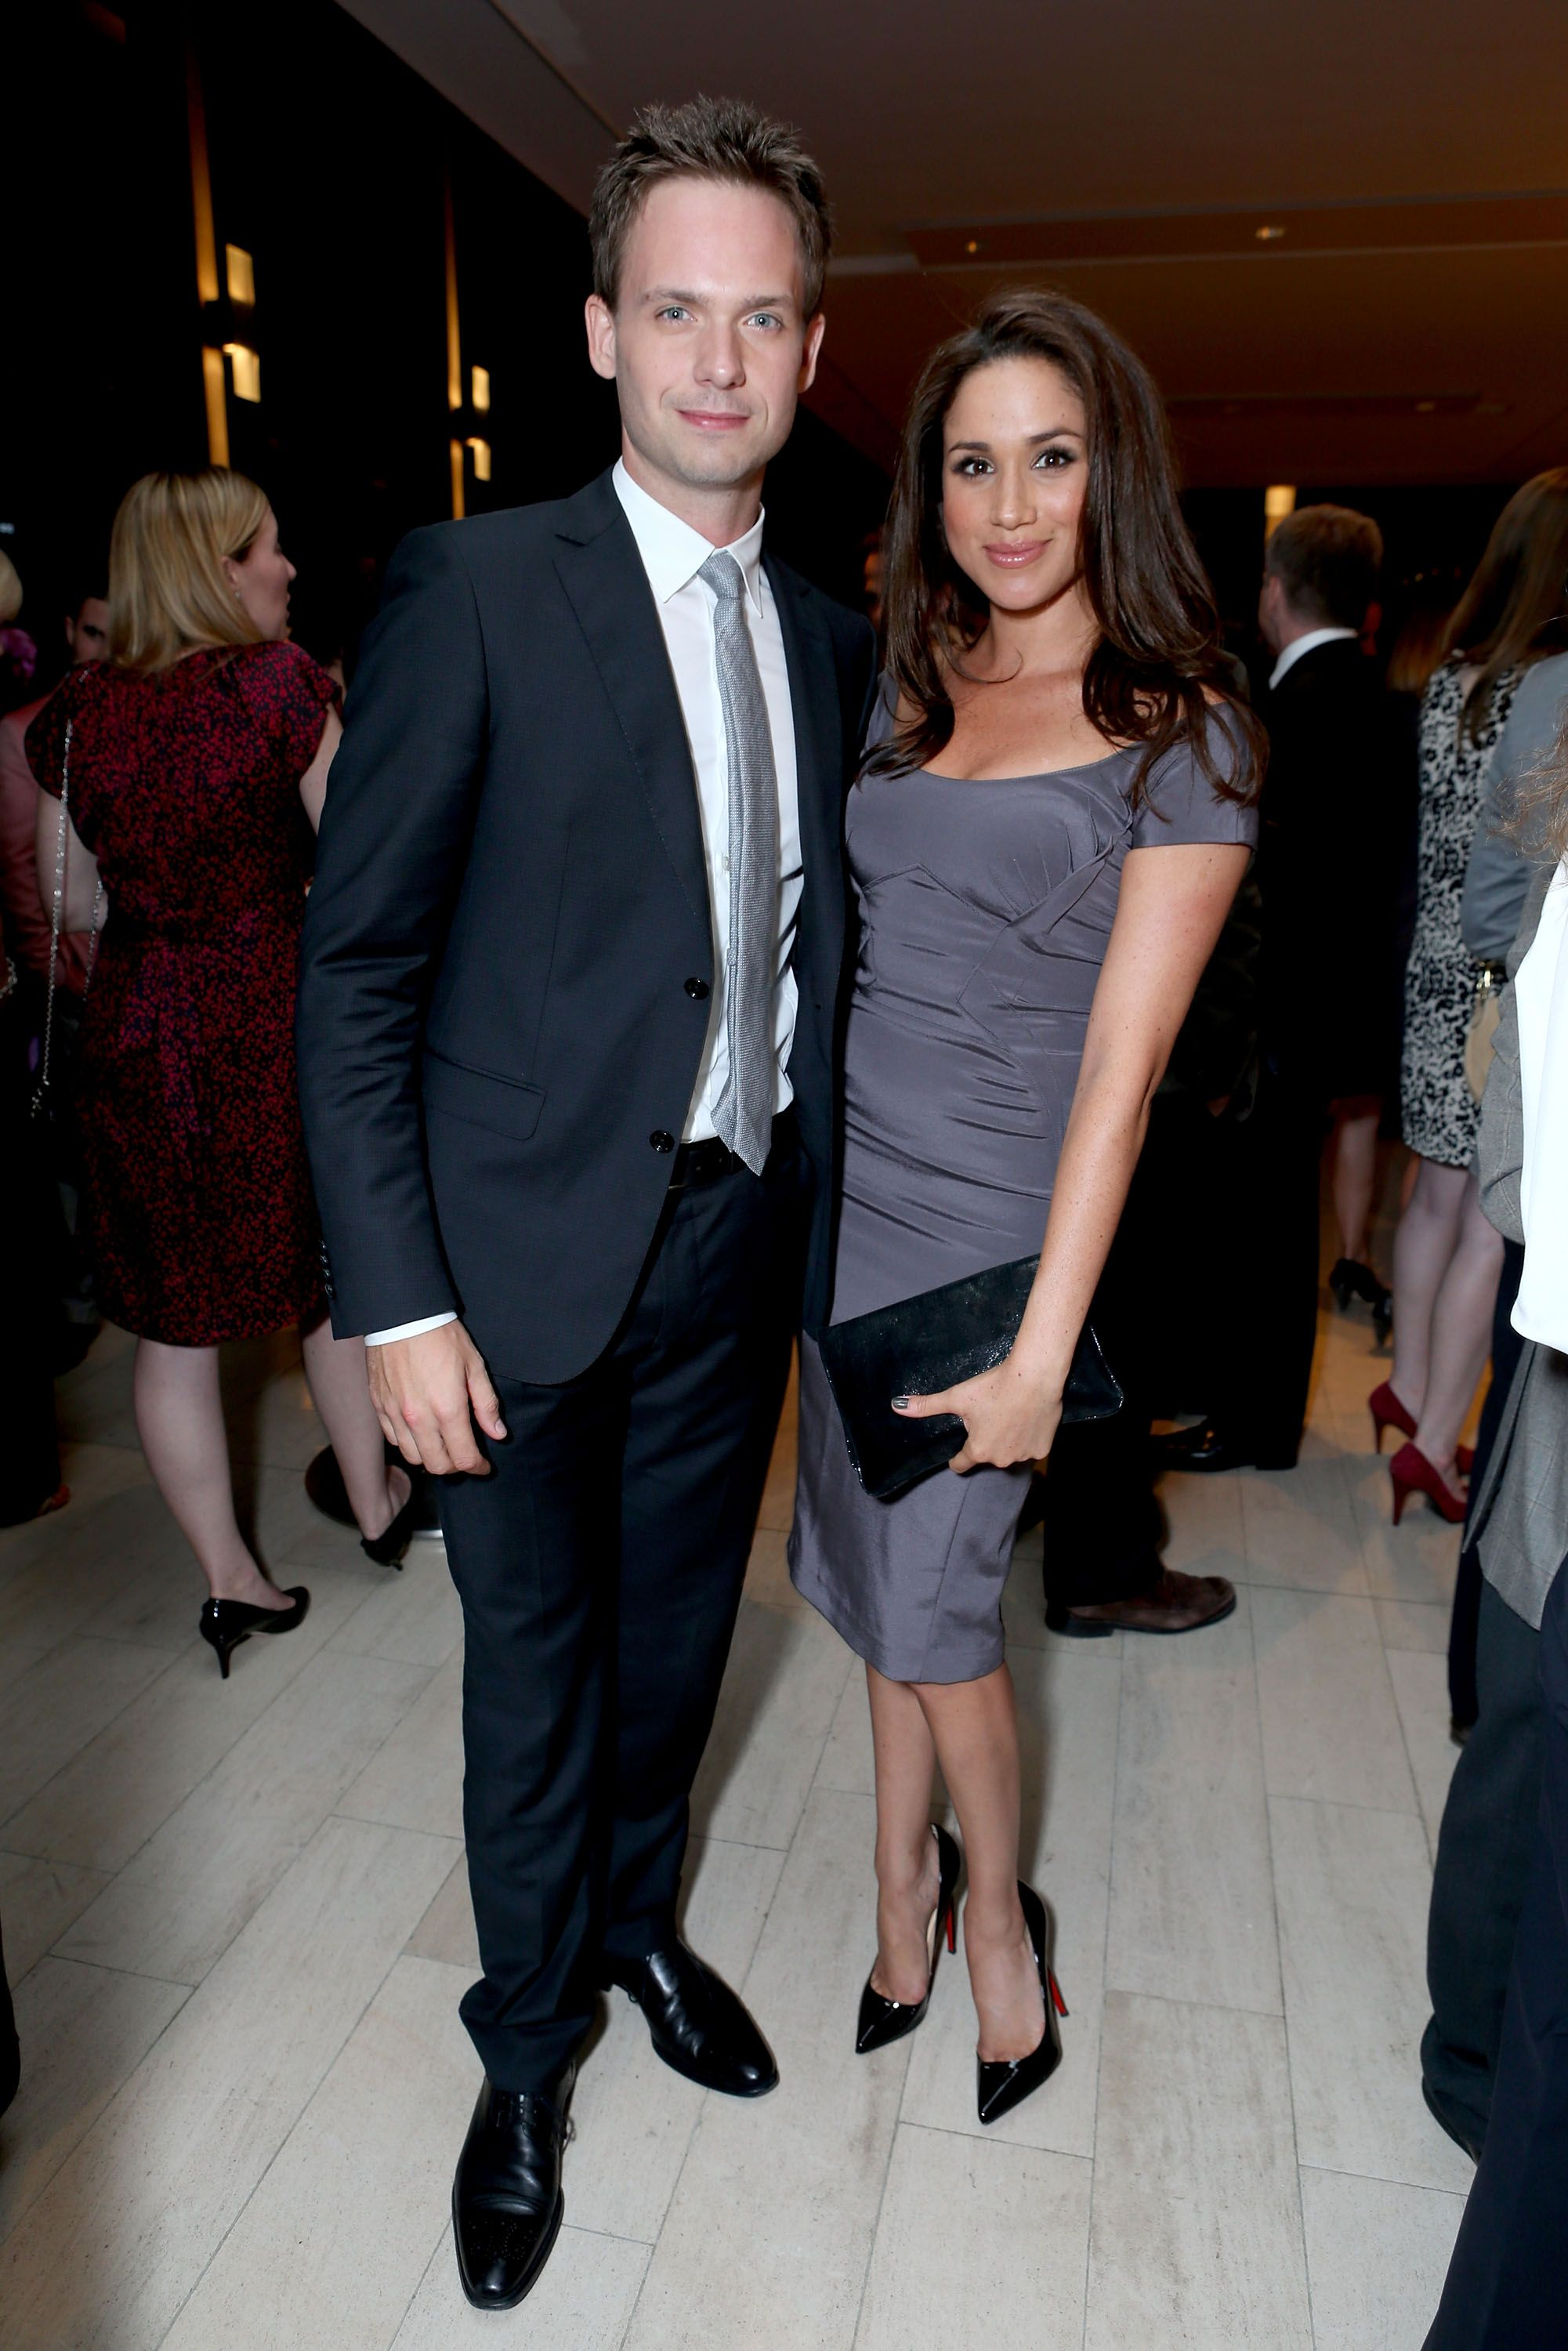 Patrick J. Adams and Meghan Markle at the FINCA Canada Fundraiser At TIFF 2012 during the Toronto International Film Festival on September 11, 2012 in Toronto, Canada | Photo: Getty Images